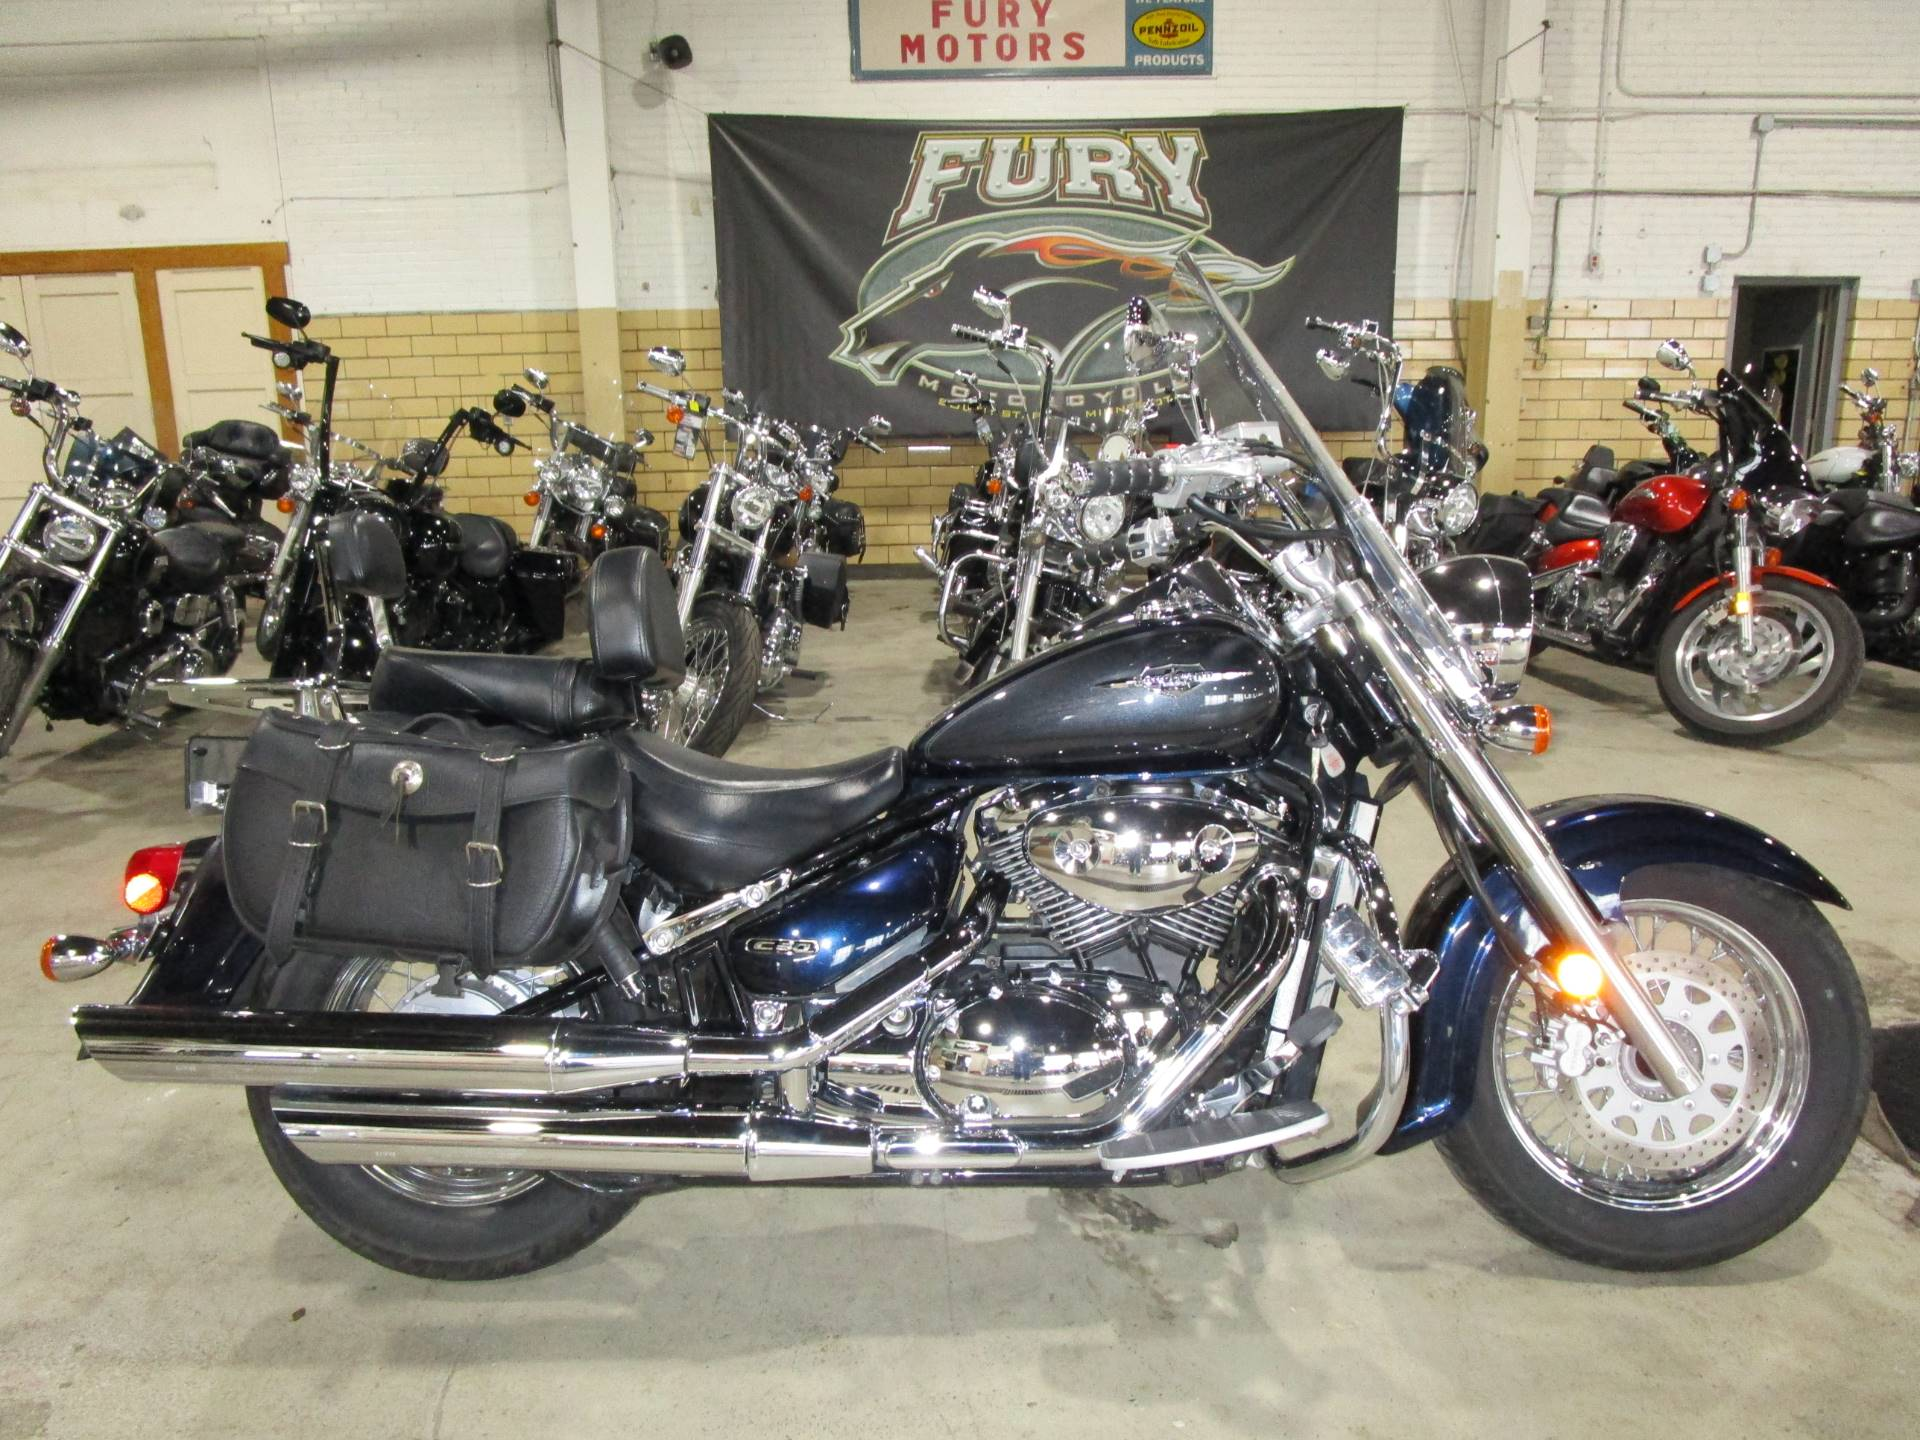 2006 Suzuki Boulevard C50 for sale 27394